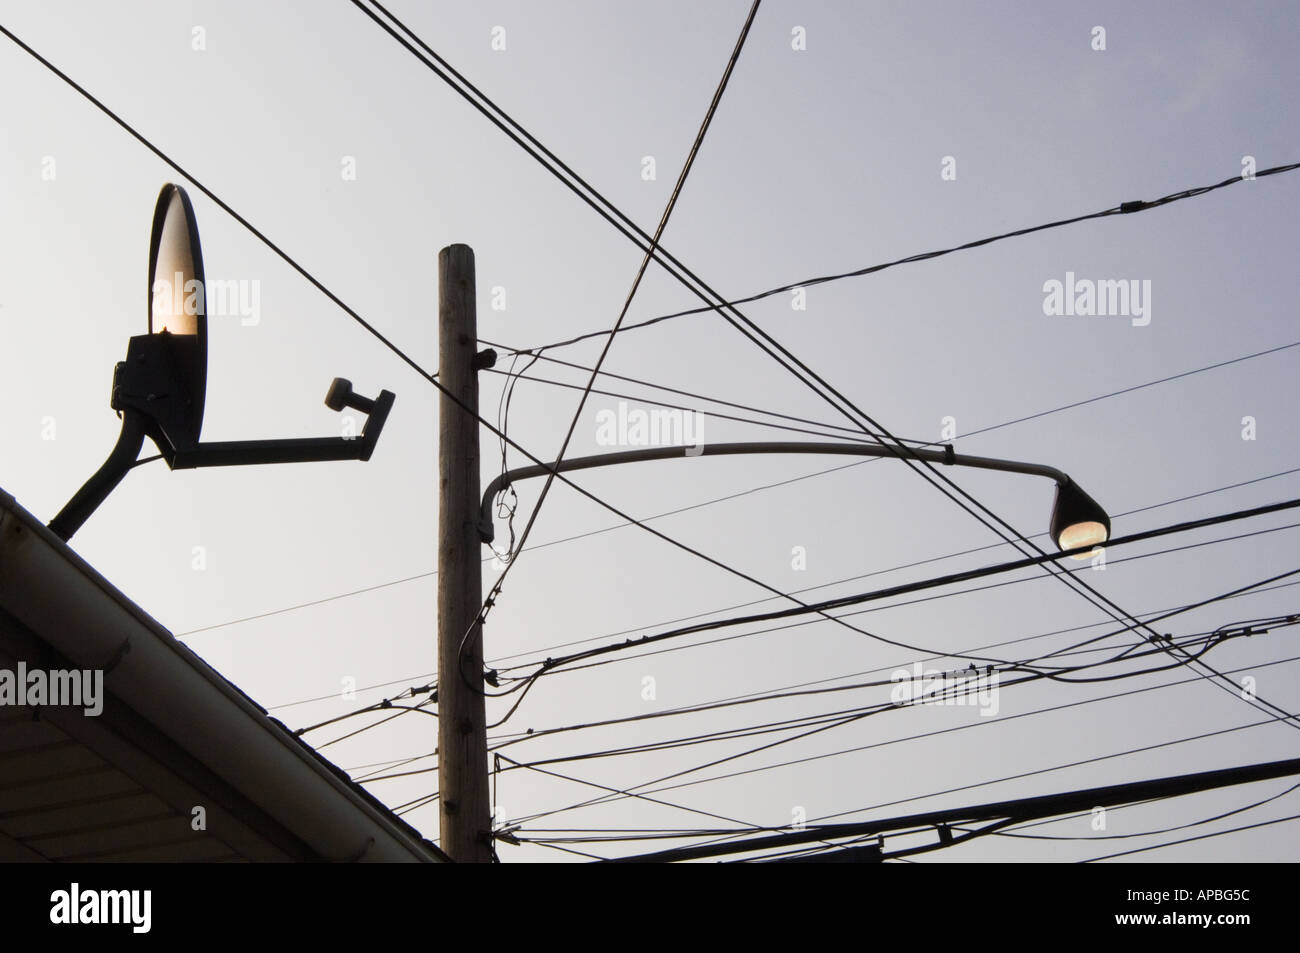 tangle of high wires a street lamp and a satellite TV dish on the ...